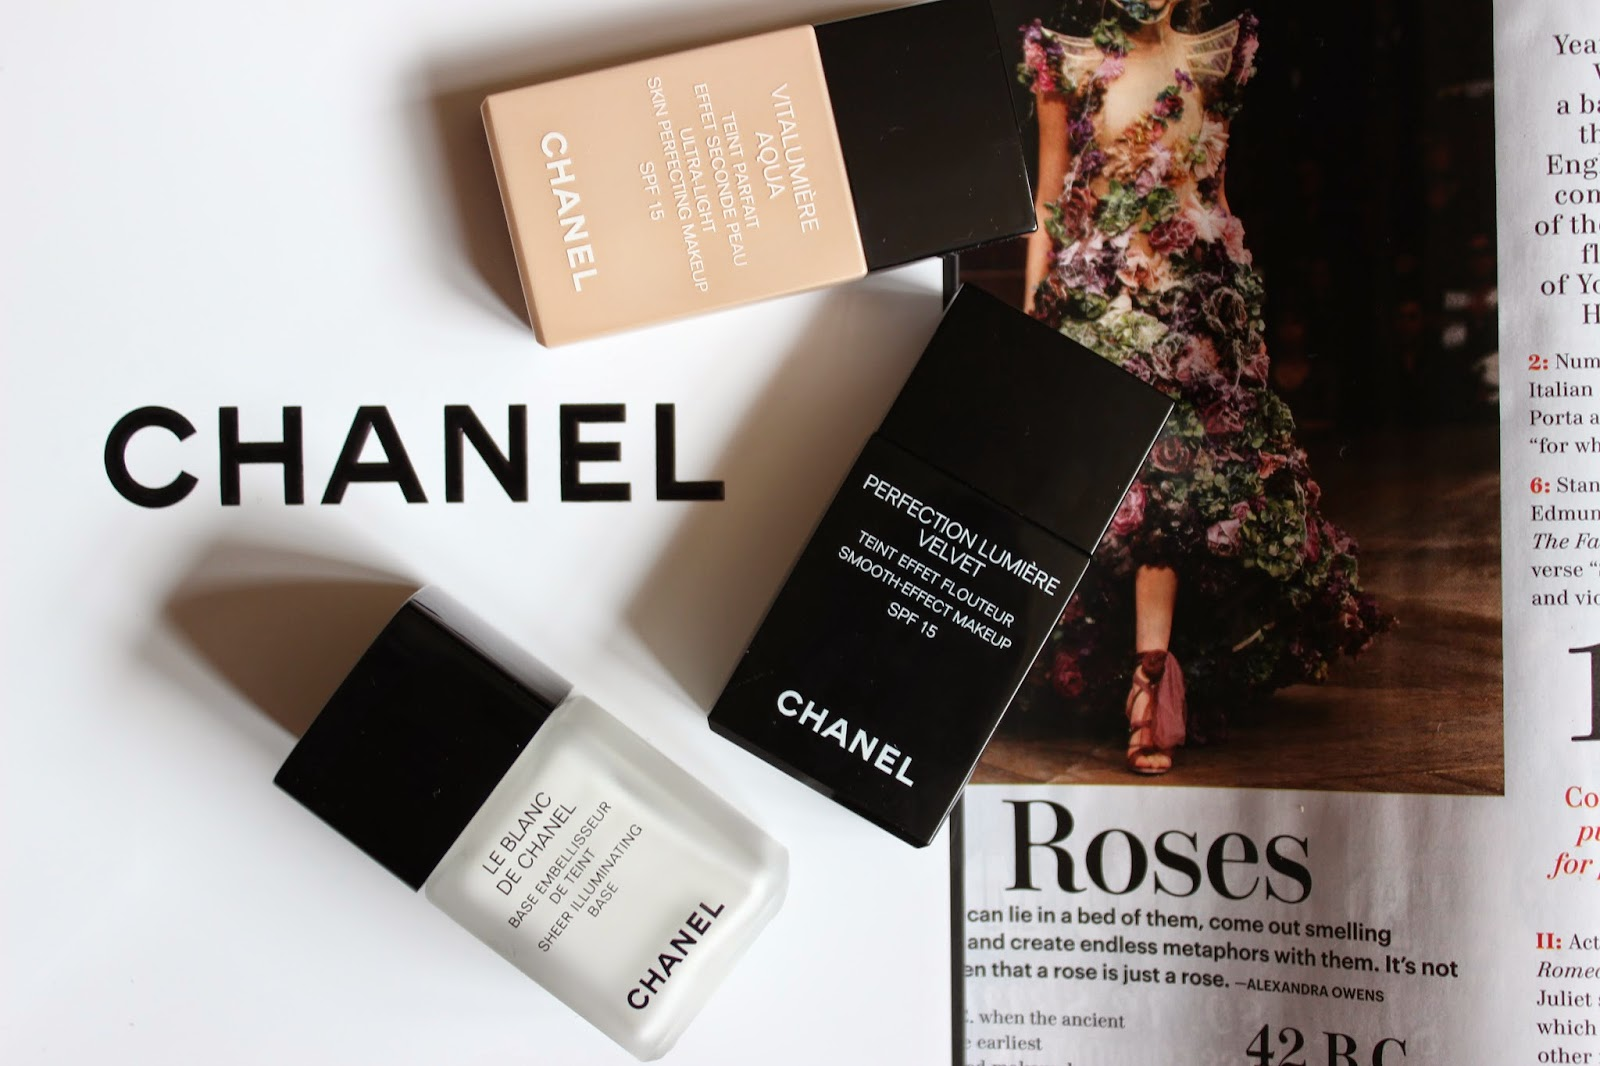 Chanel Haul Vitalumiere Aqua Perfection Lumiere Velvet Le Blanc De Chanel Haul L'amour Josie